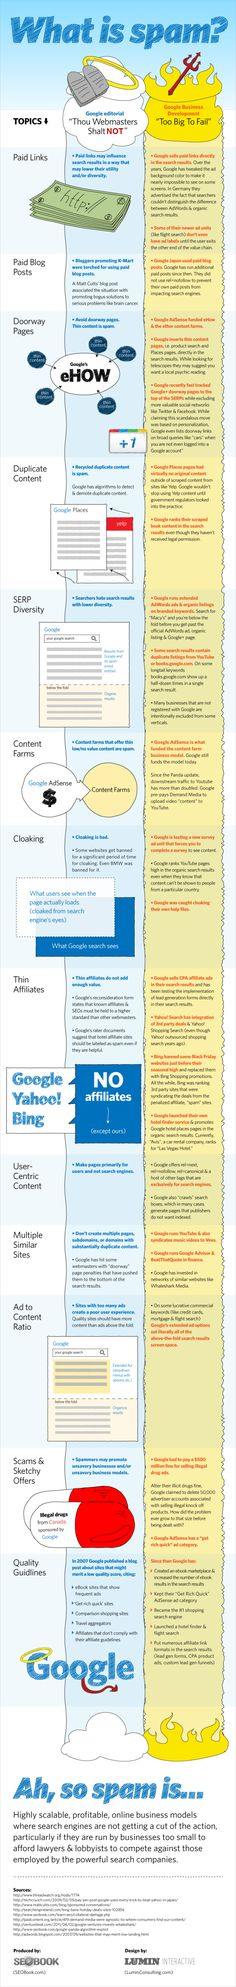 What is spam? #infografia #infographic #internet